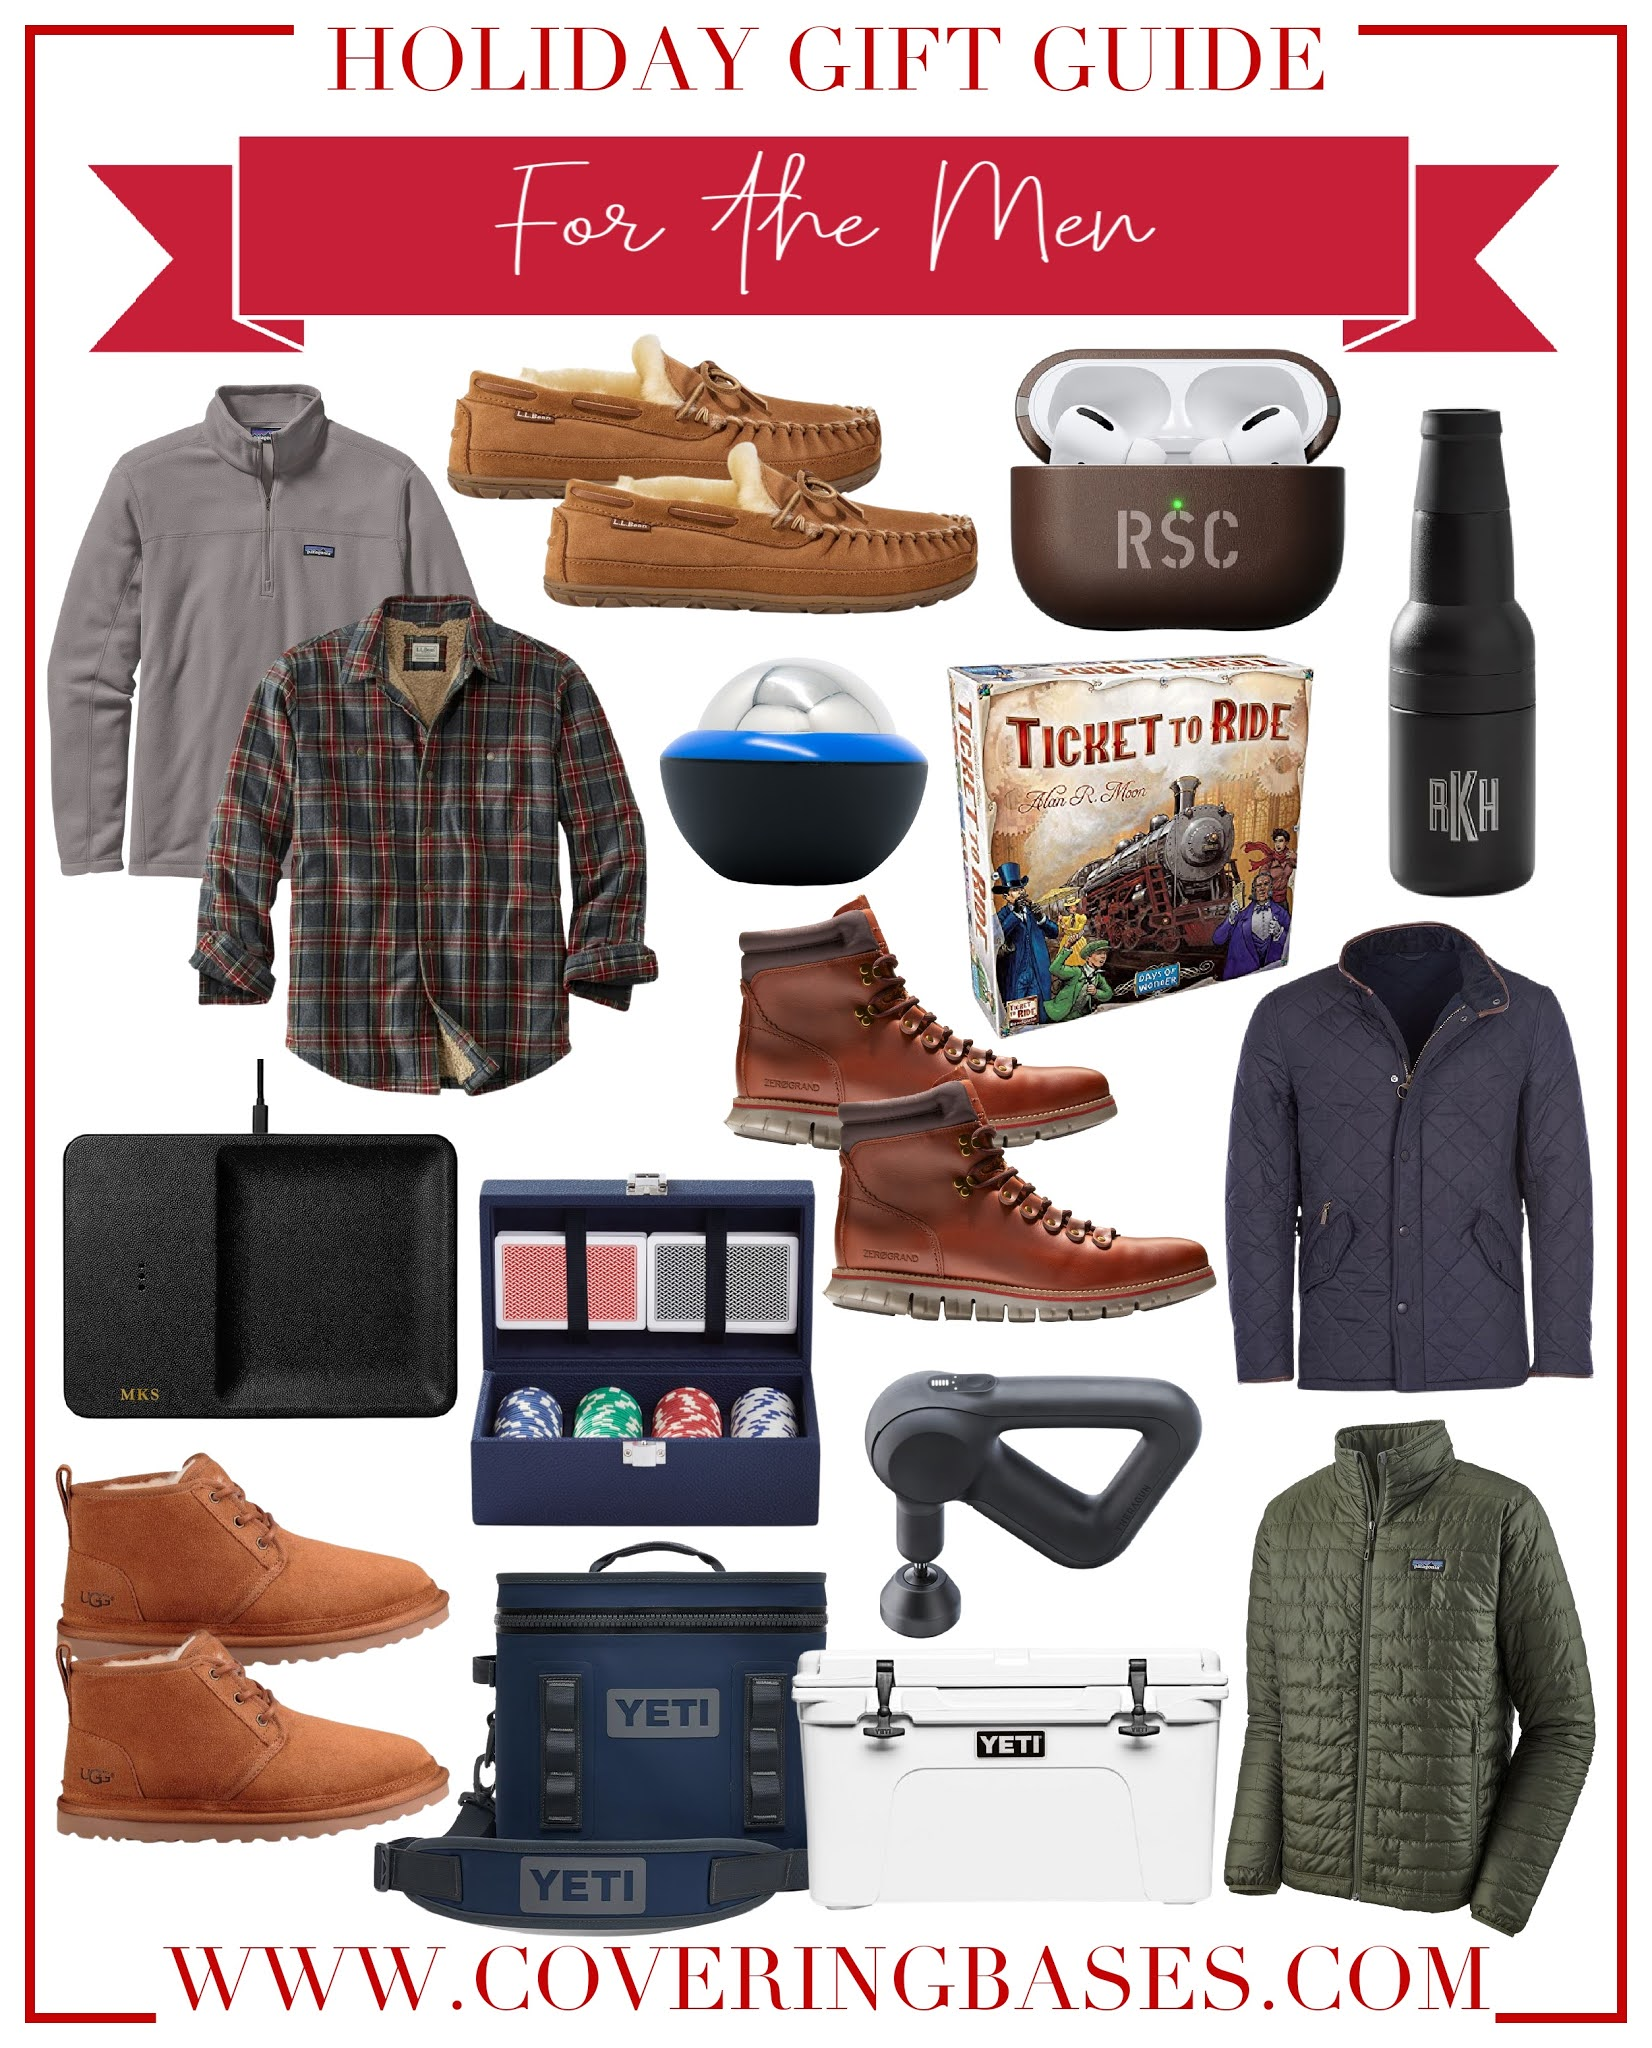 For the Guys Gift Guide